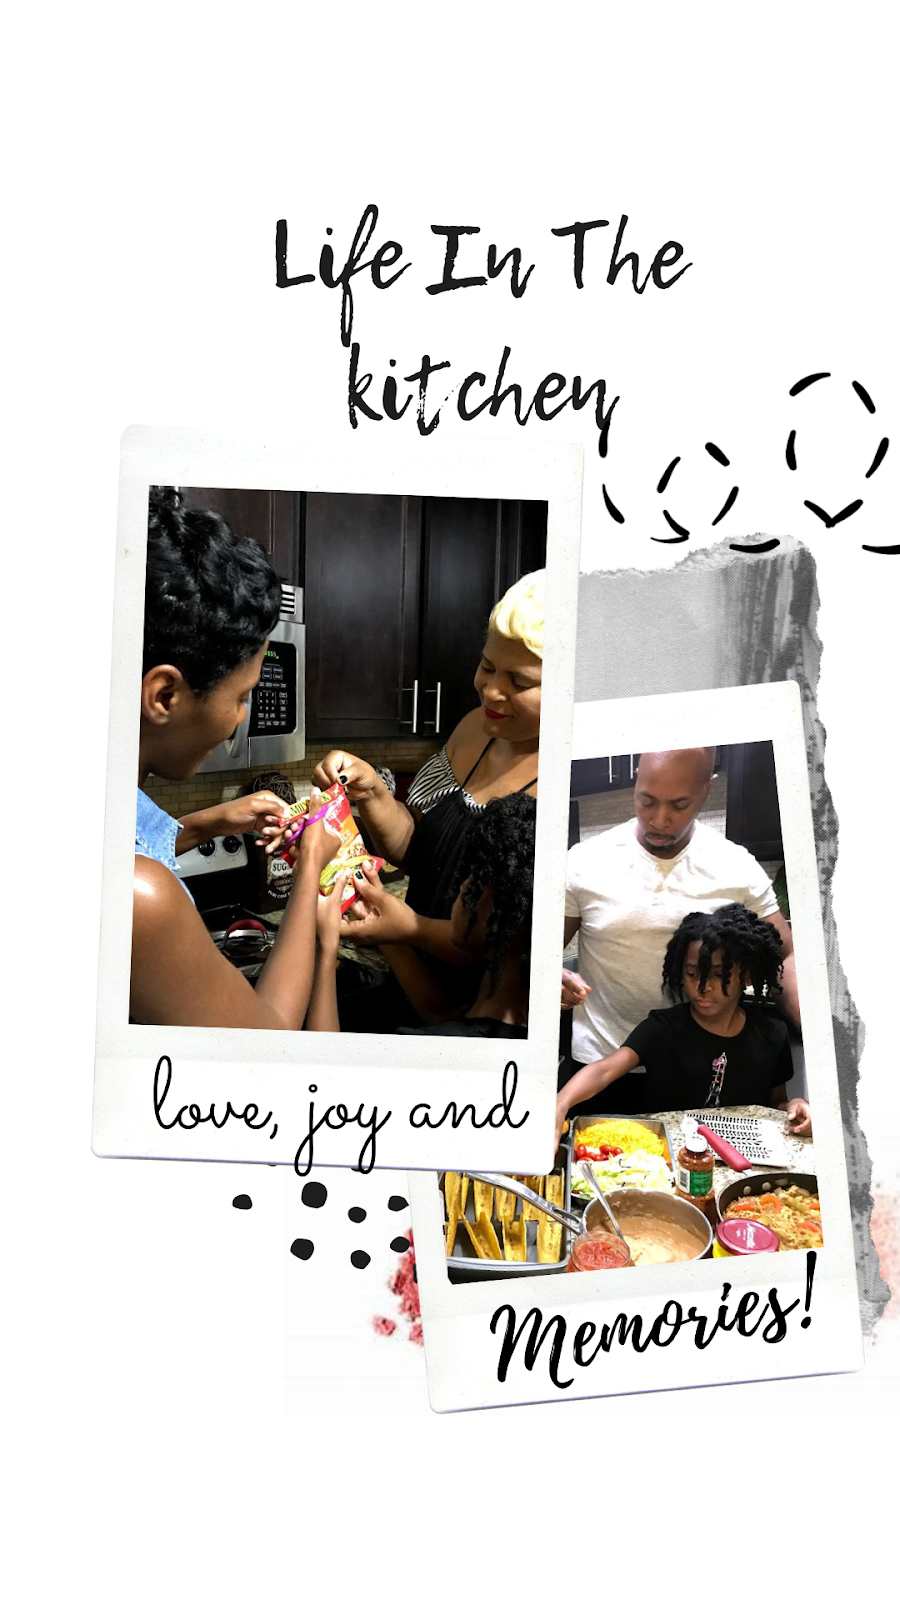 Image: Family In The Kitchen learning how to cook together:Two daughters, Dad, Mom